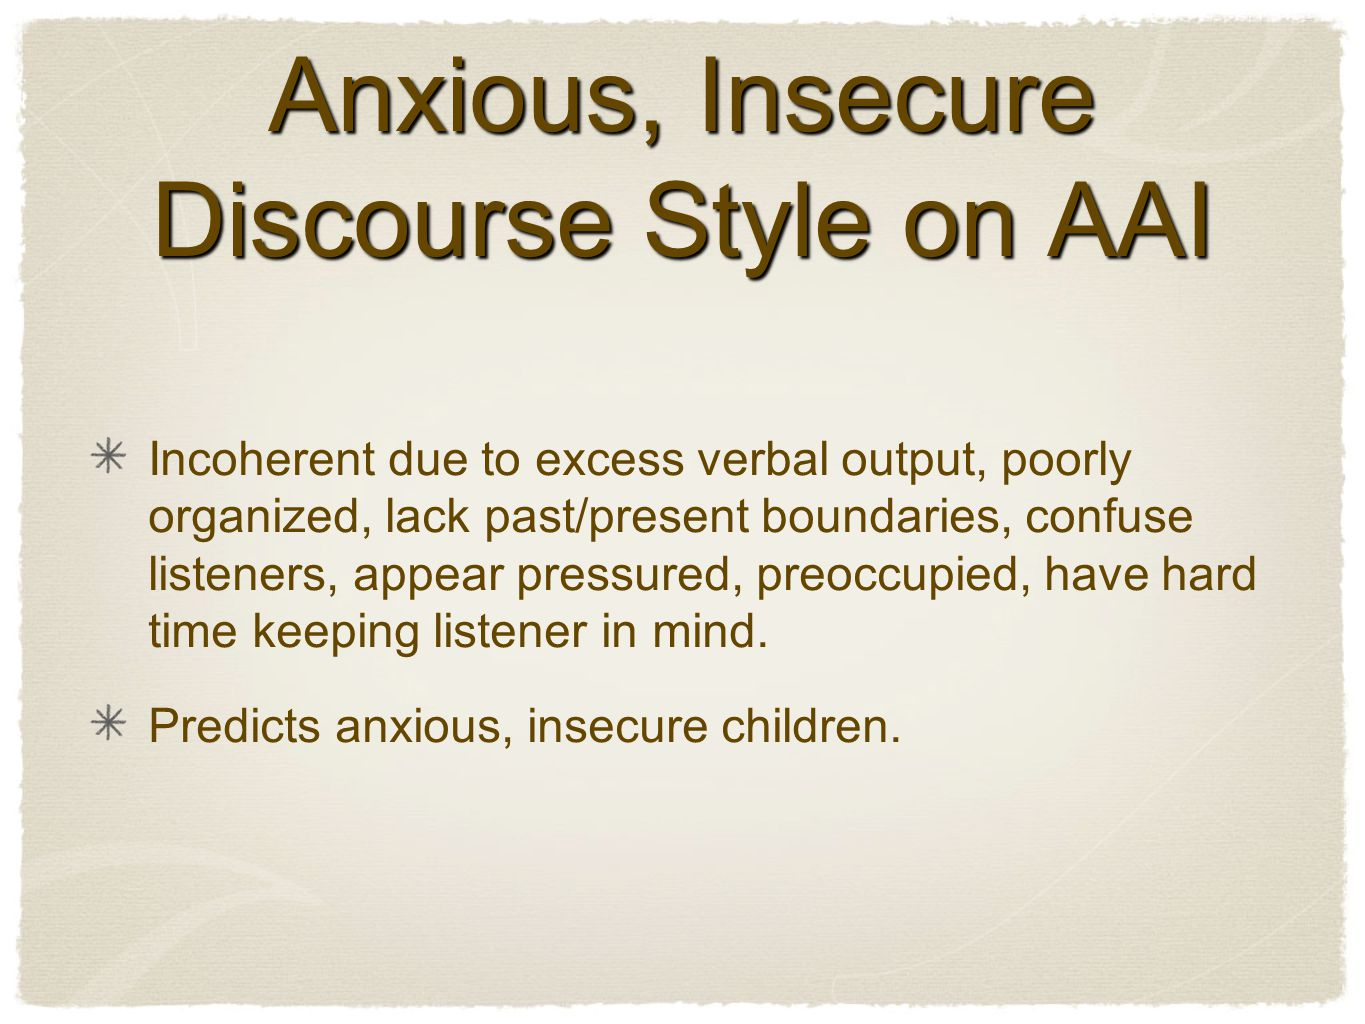 Anxious, Insecure Discourse Style on AAI Incoherent due to excess verbal output, poorly organized, lack past/present boundaries, confuse listeners, appear pressured, preoccupied, have hard time keeping listener in mind.